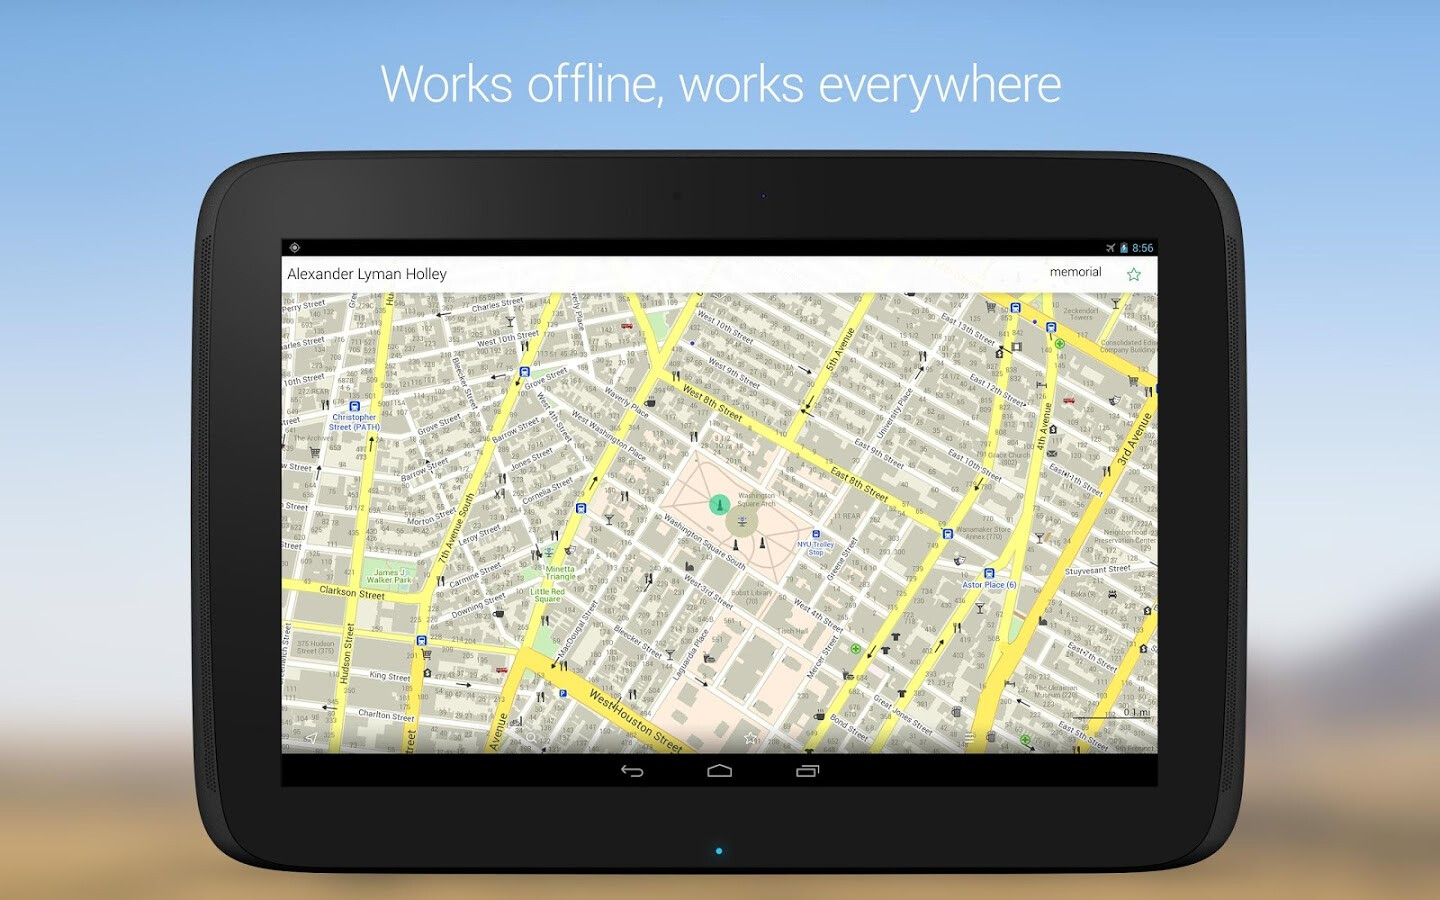 gps offline maps android   images  top  best offline gps map  - gps offline maps android  of the best offline gps maps apps for android